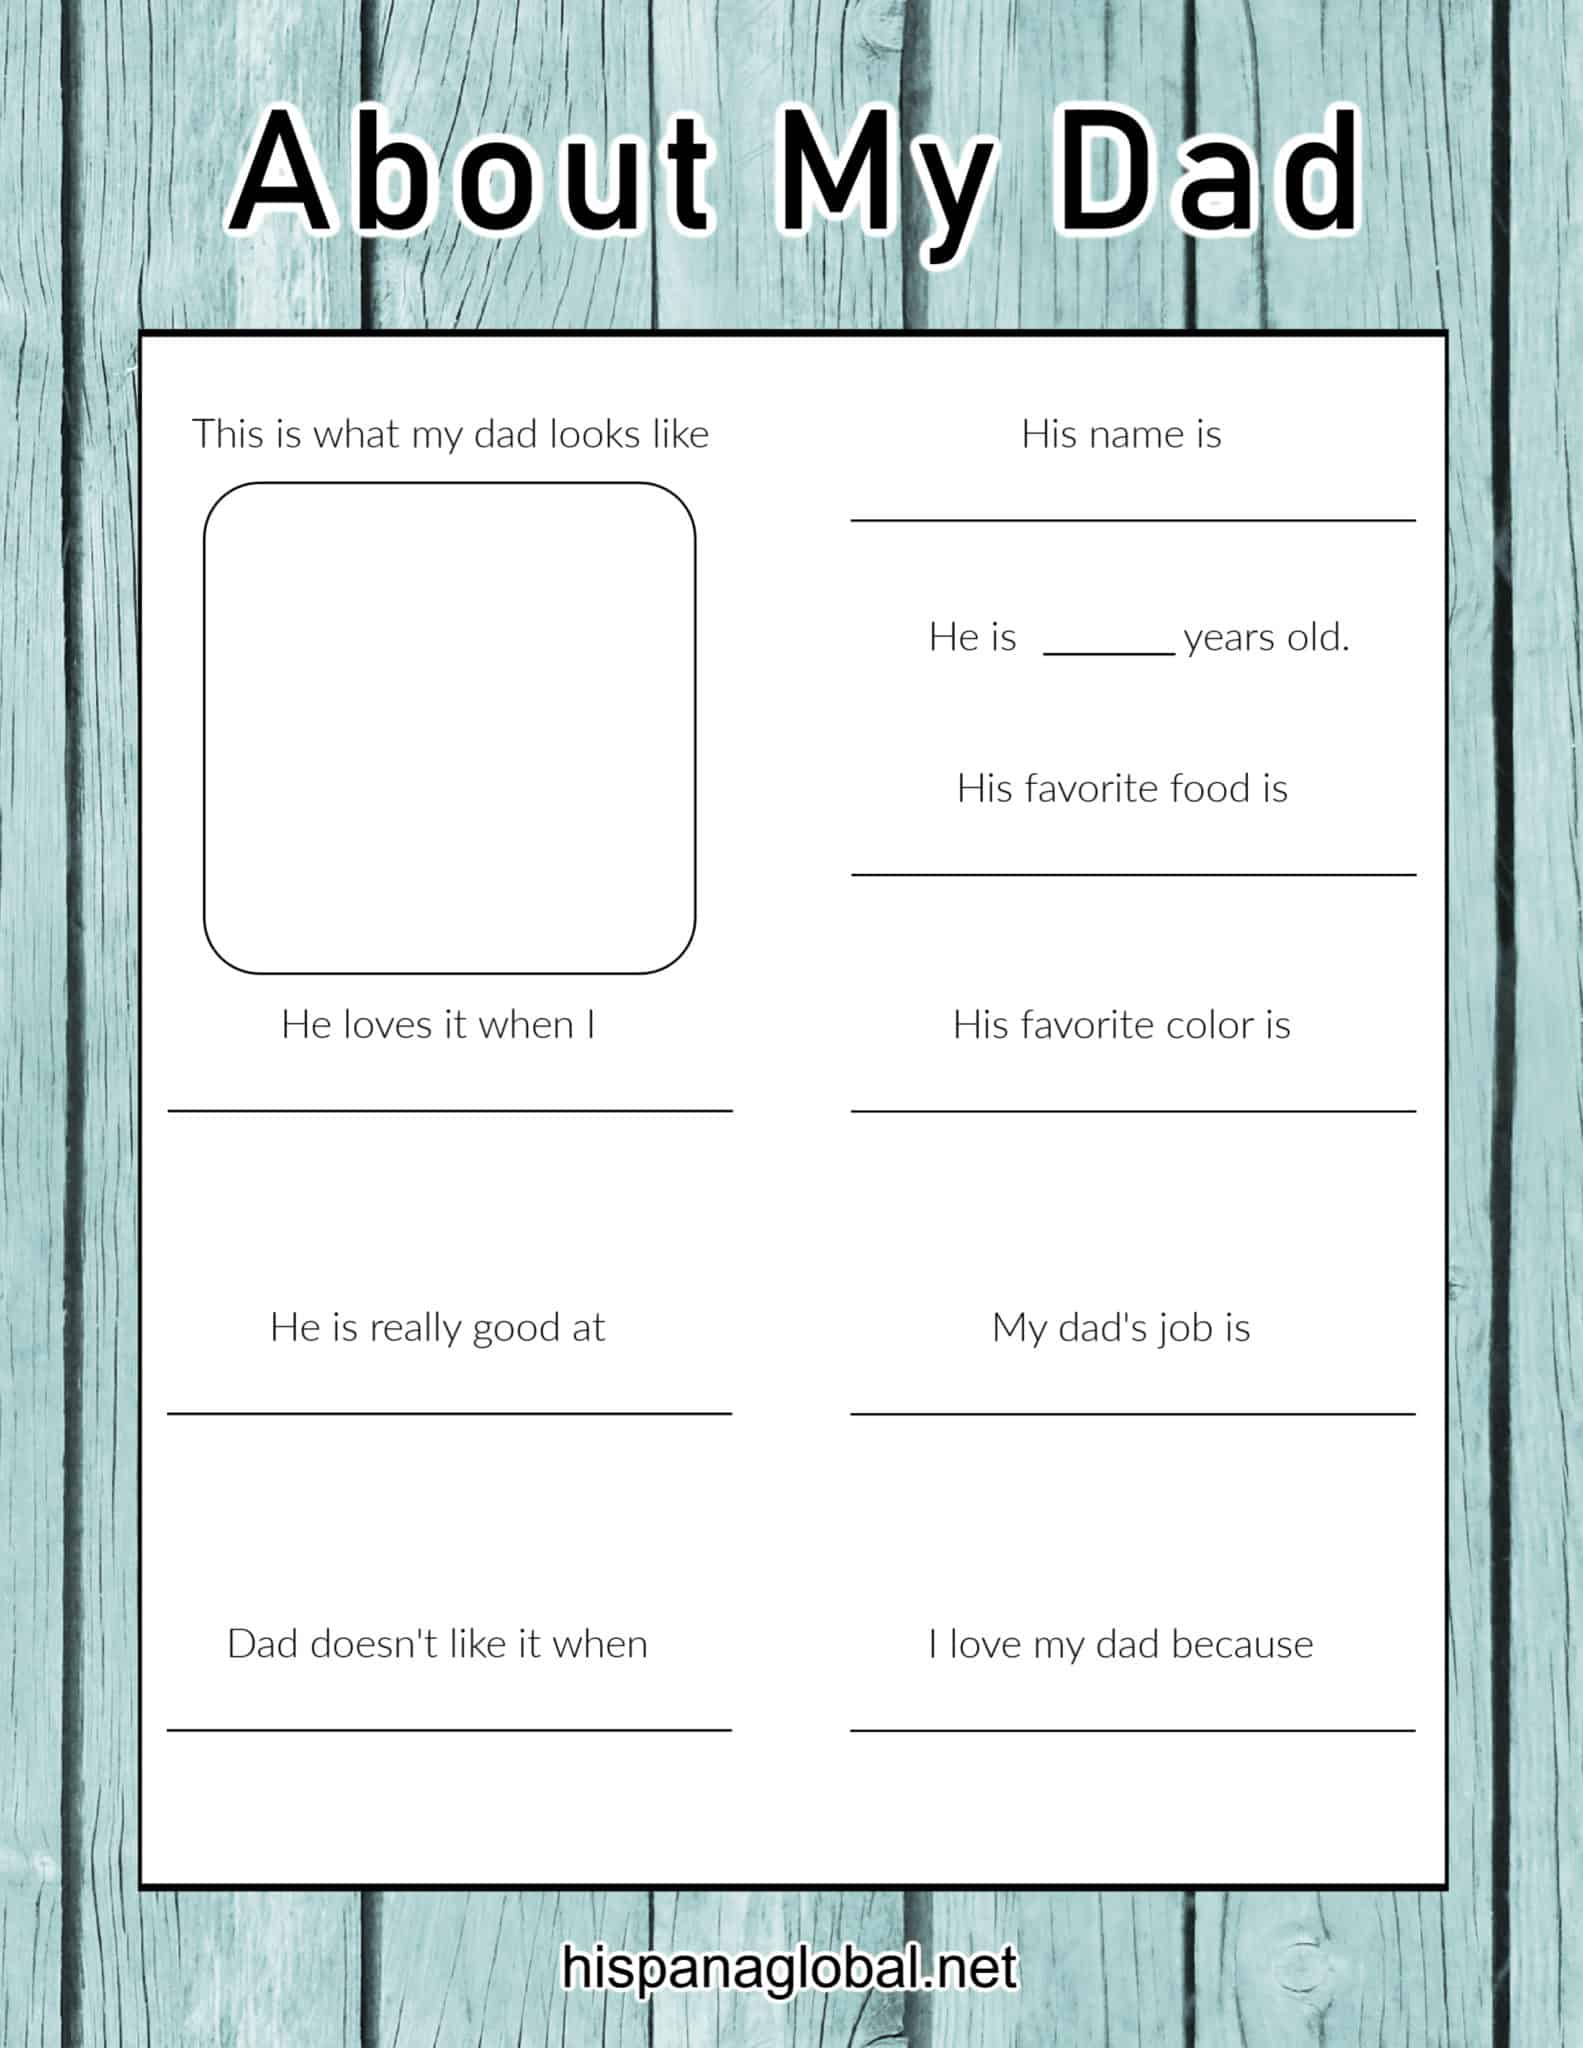 Fathers Day About My Dad printable activity sheet